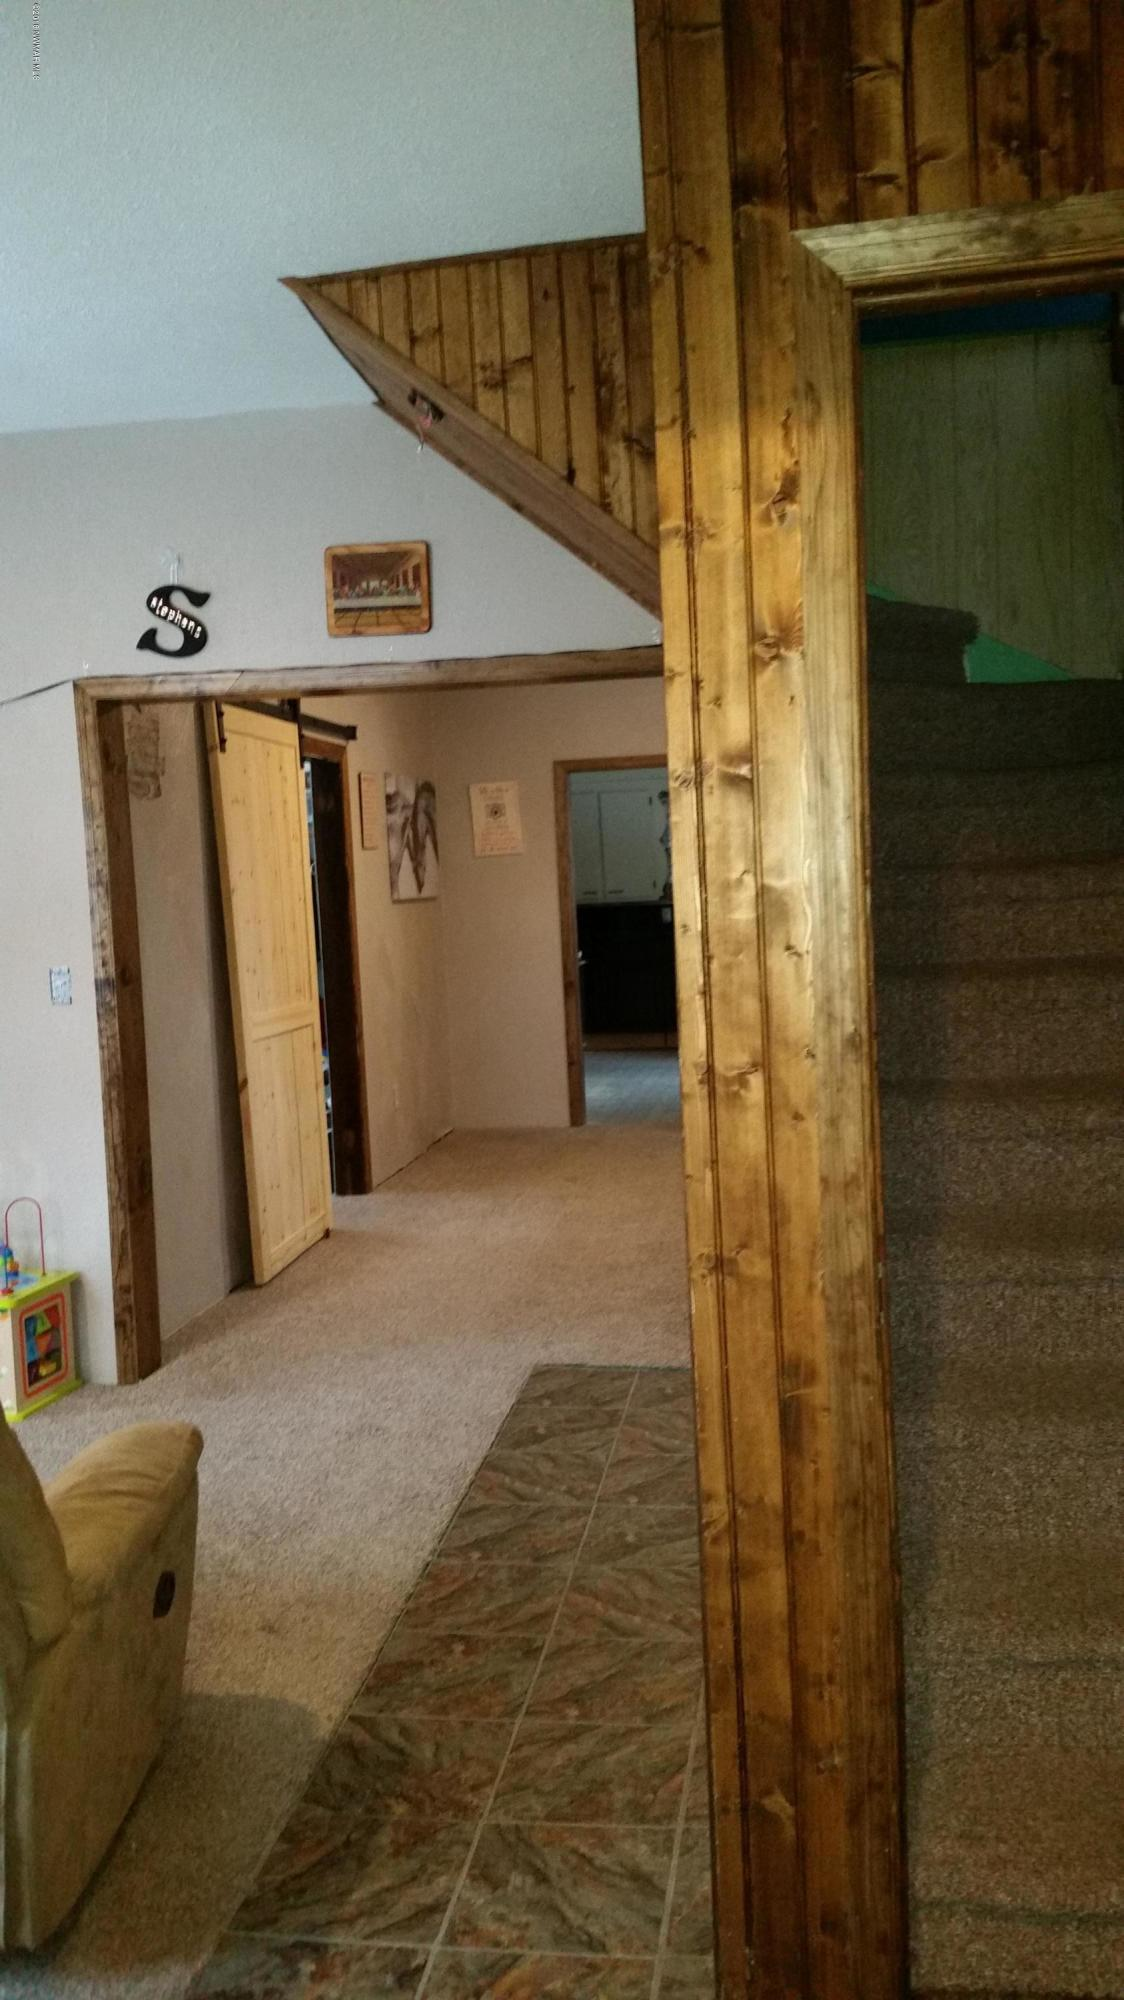 A look inside from the front entry.